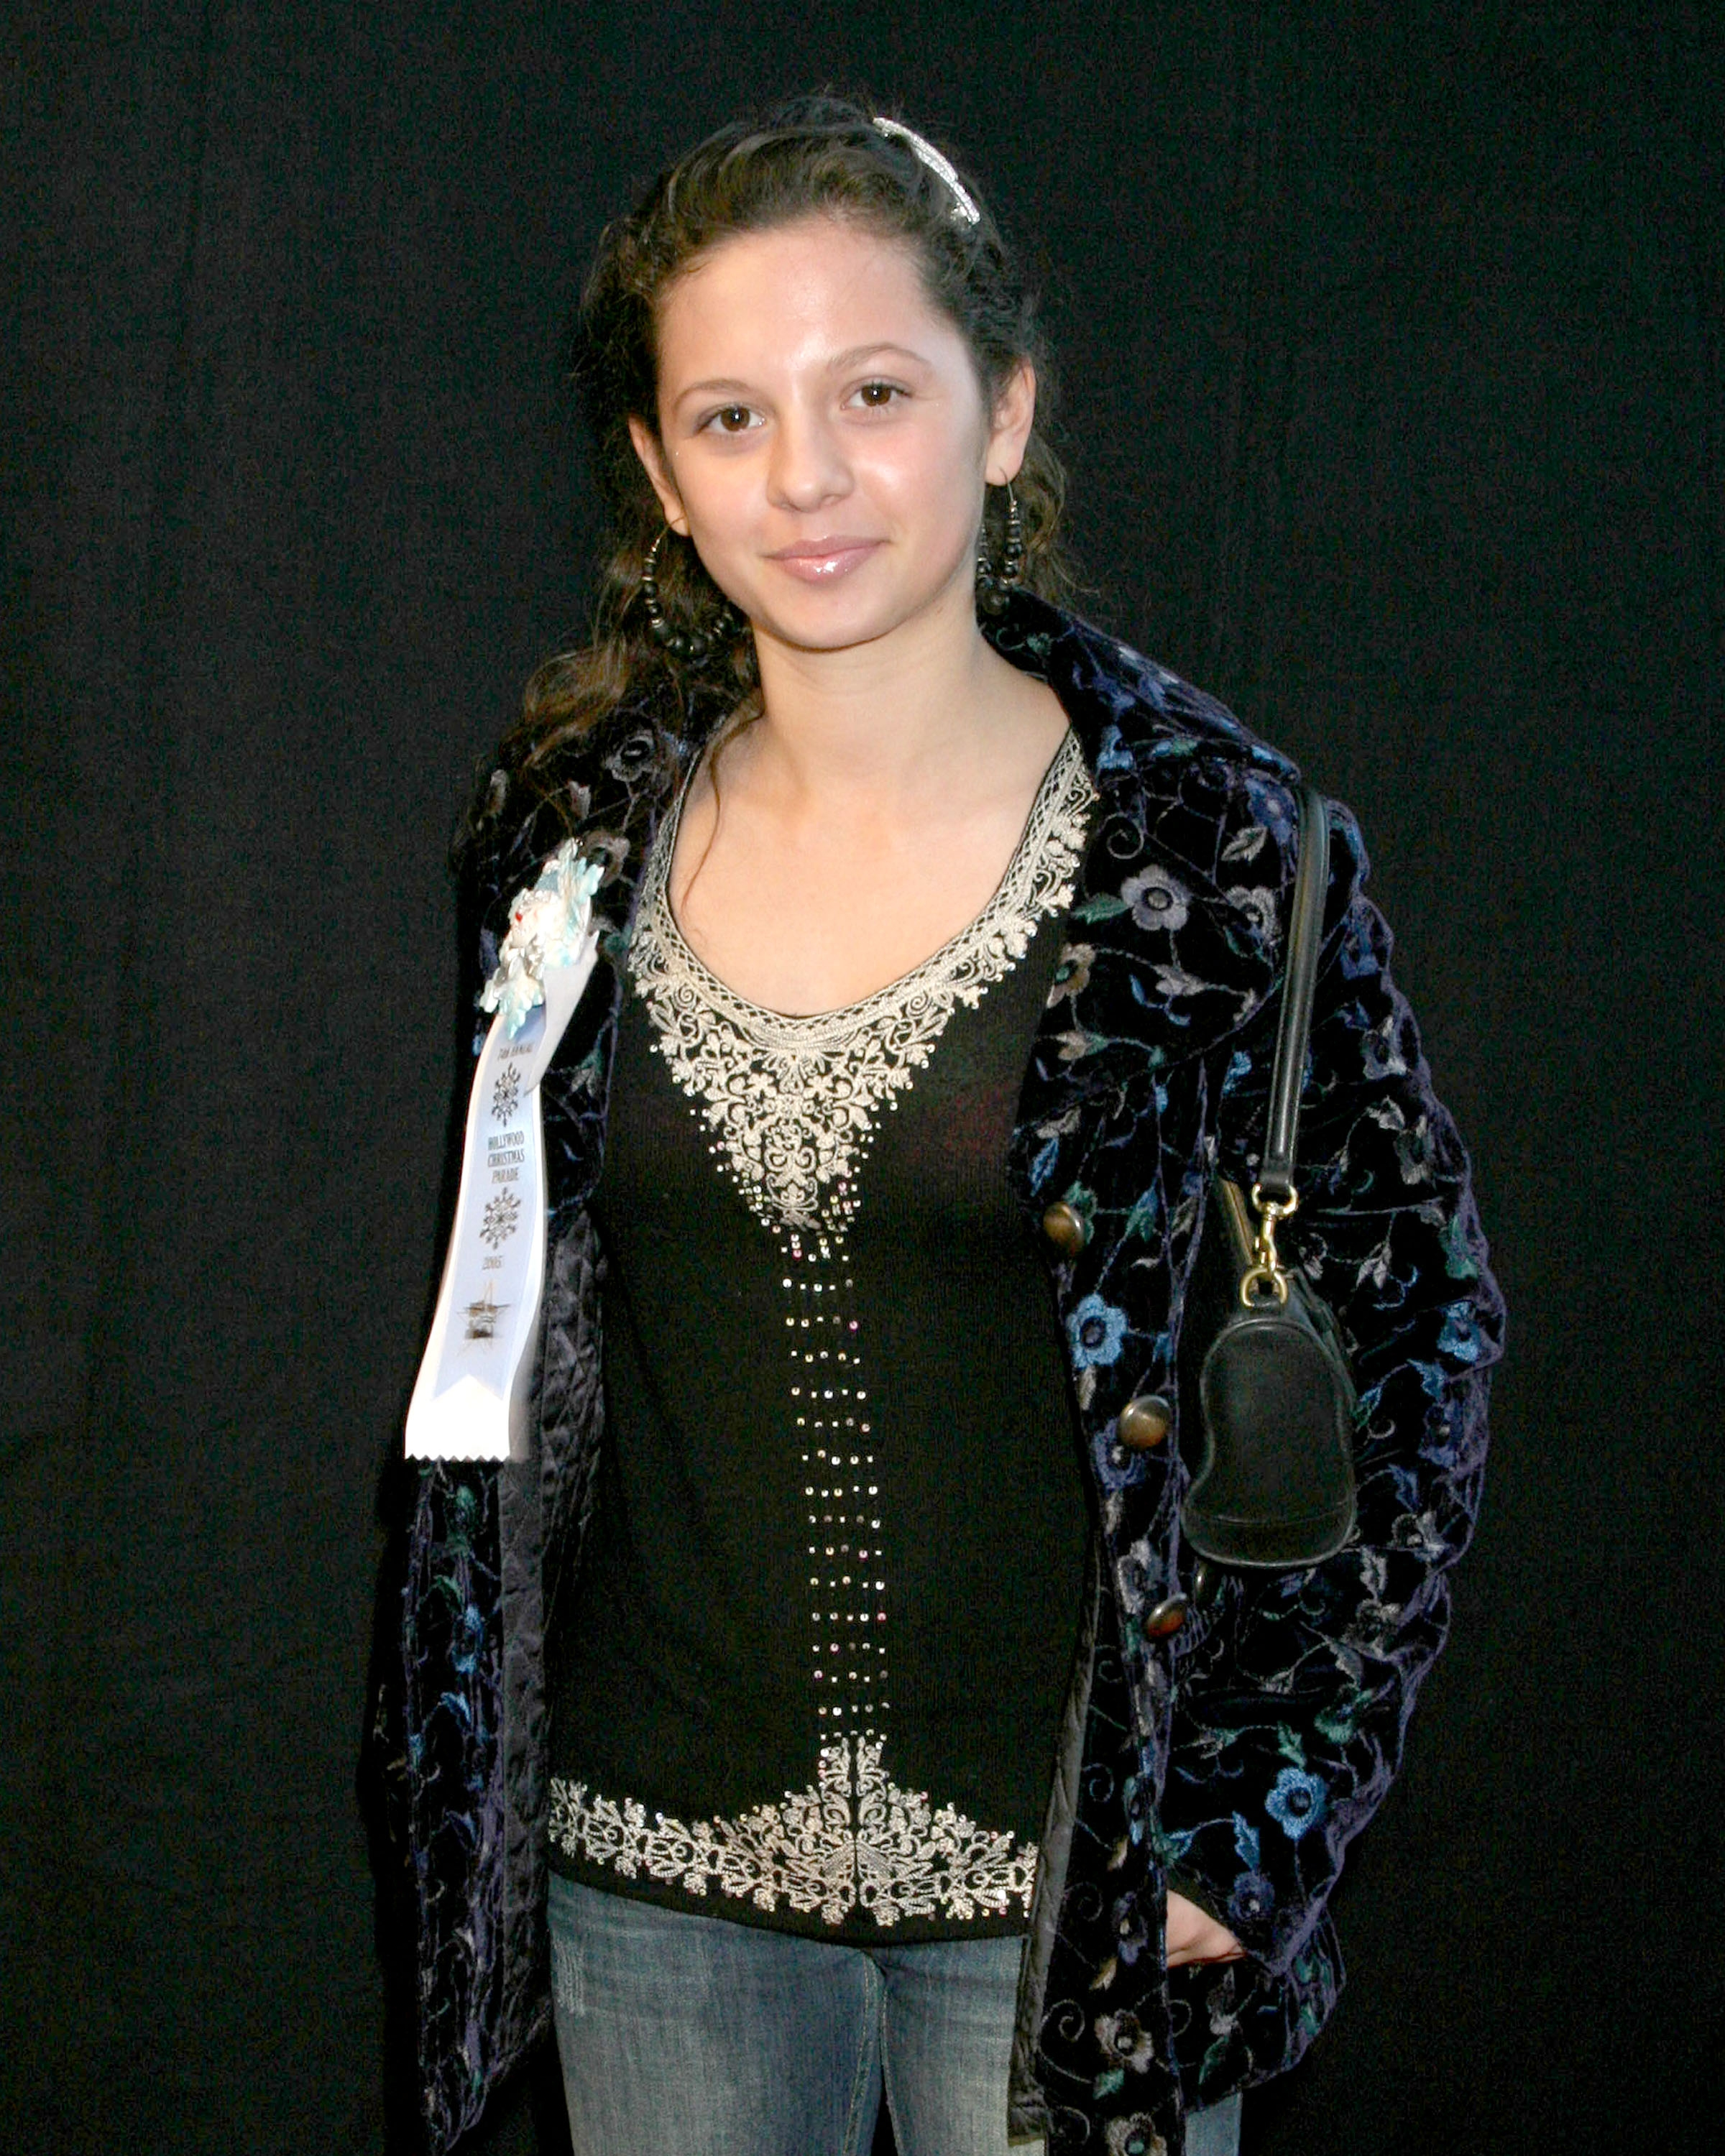 Photos de Mackenzie Rosman - Hollywood Christmas Parade 11.27.2005 - 20